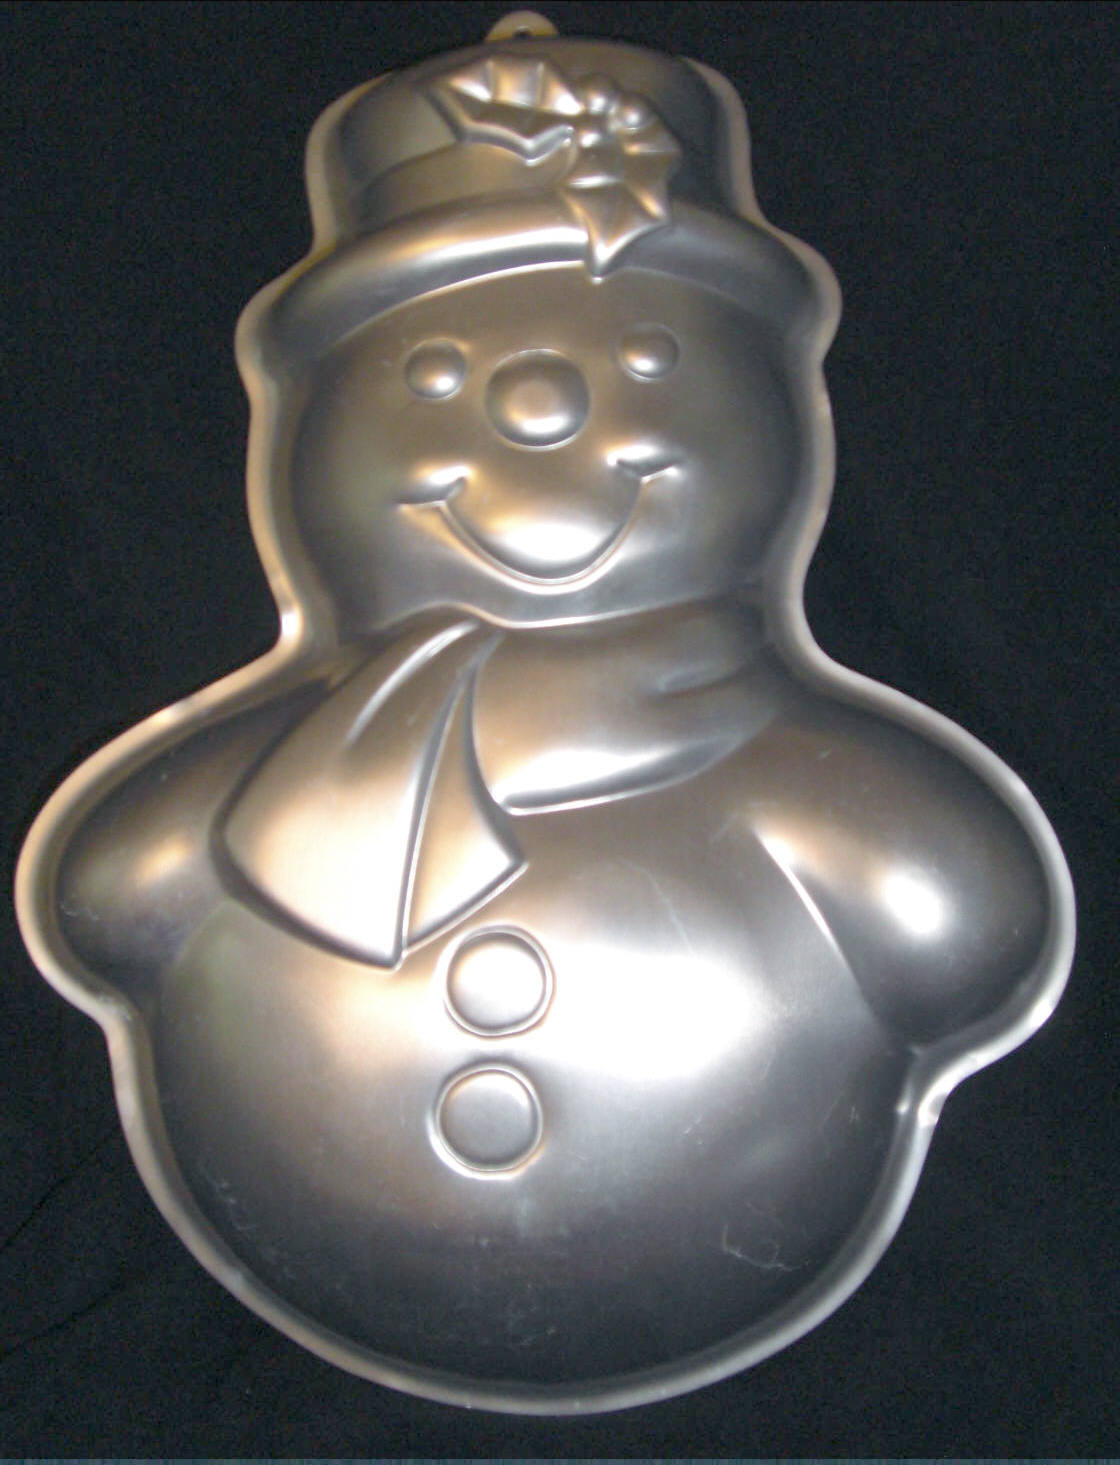 Primary image for Wilton Cake Pan SNOWMAN 2105-803 Preowned 1989